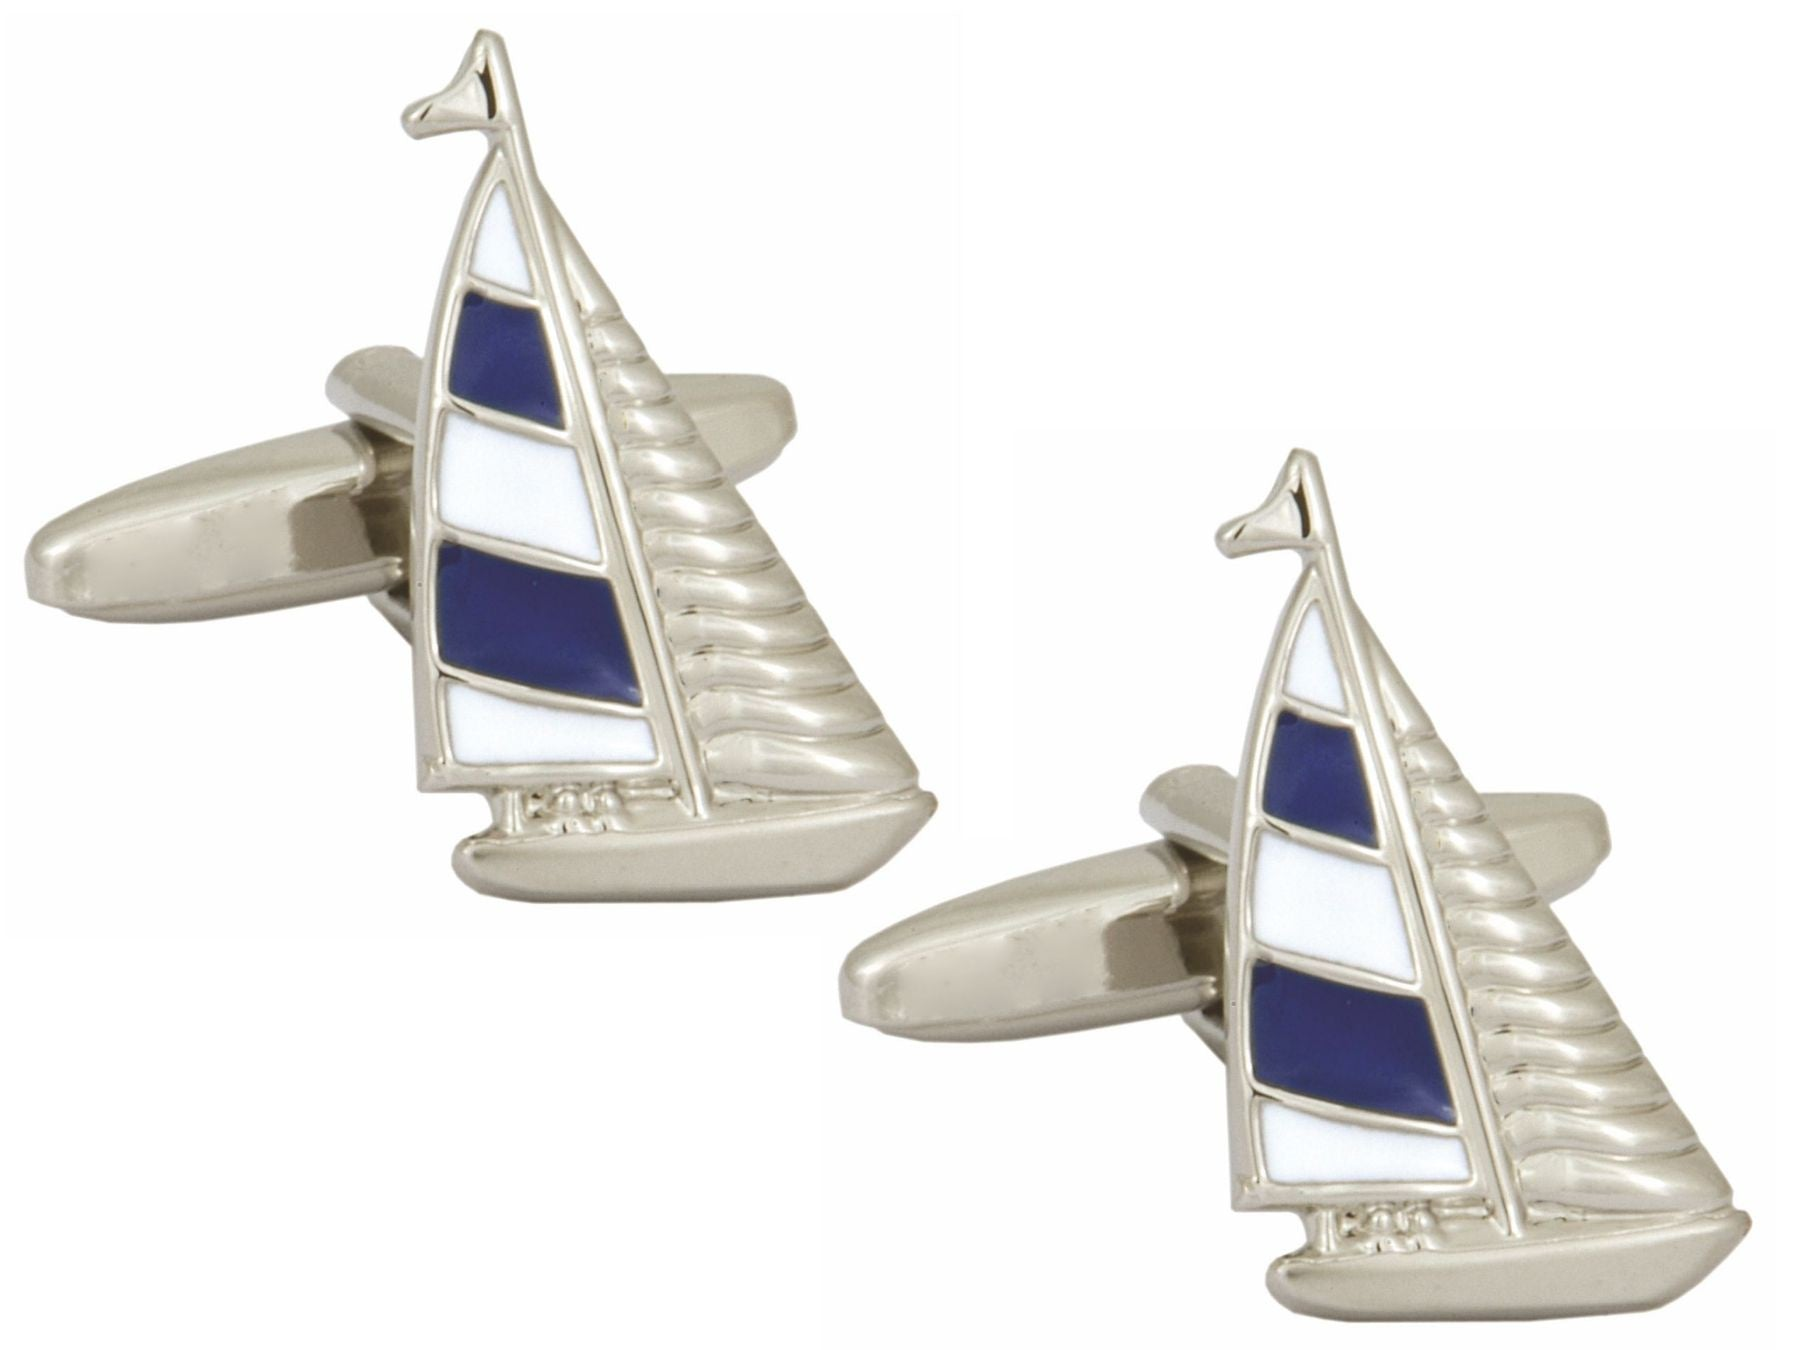 Blue and White Yacht Rhodium Plated Cufflinks